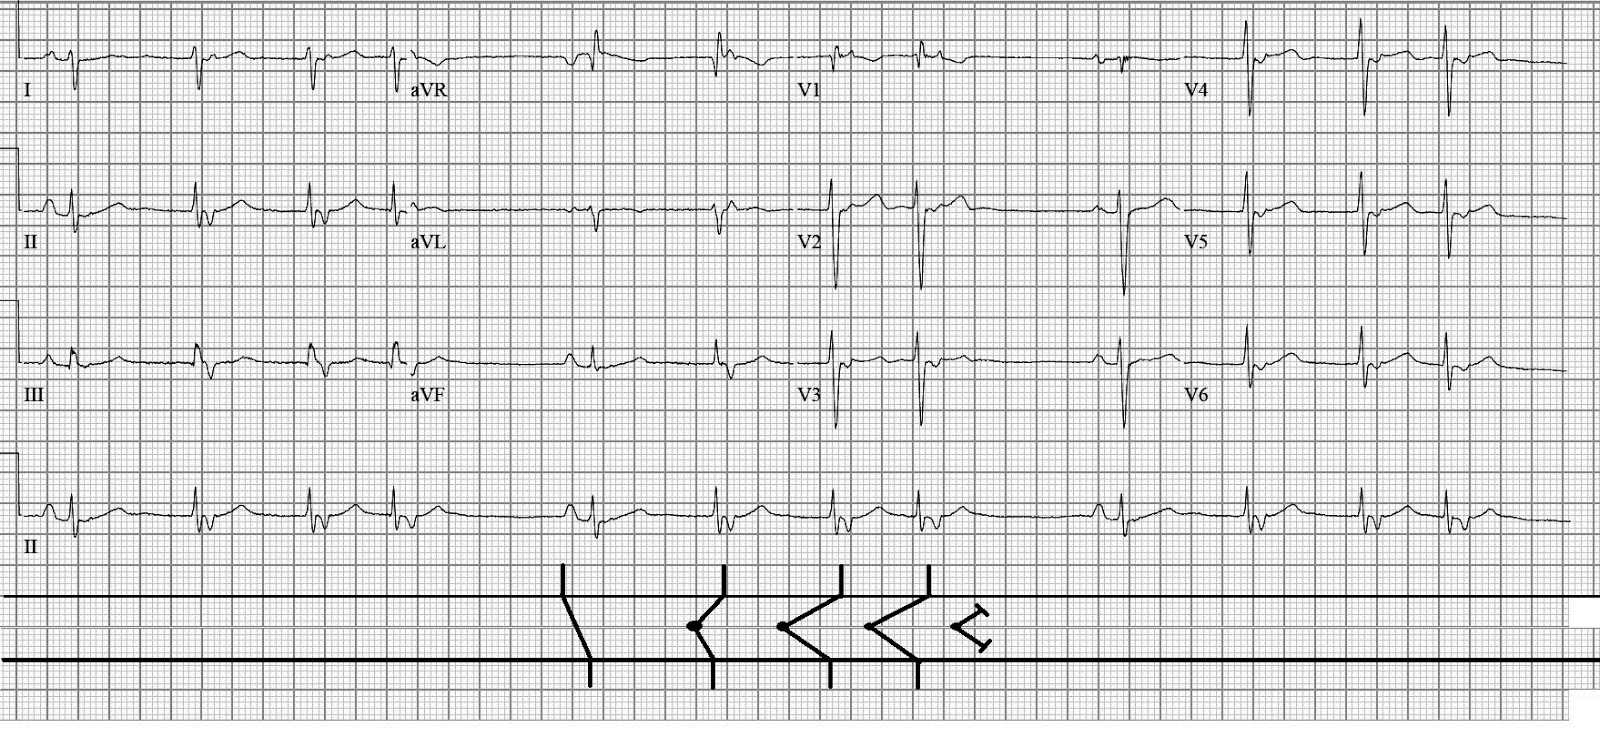 ecg rhythms  another irregular rhythm with a pattern